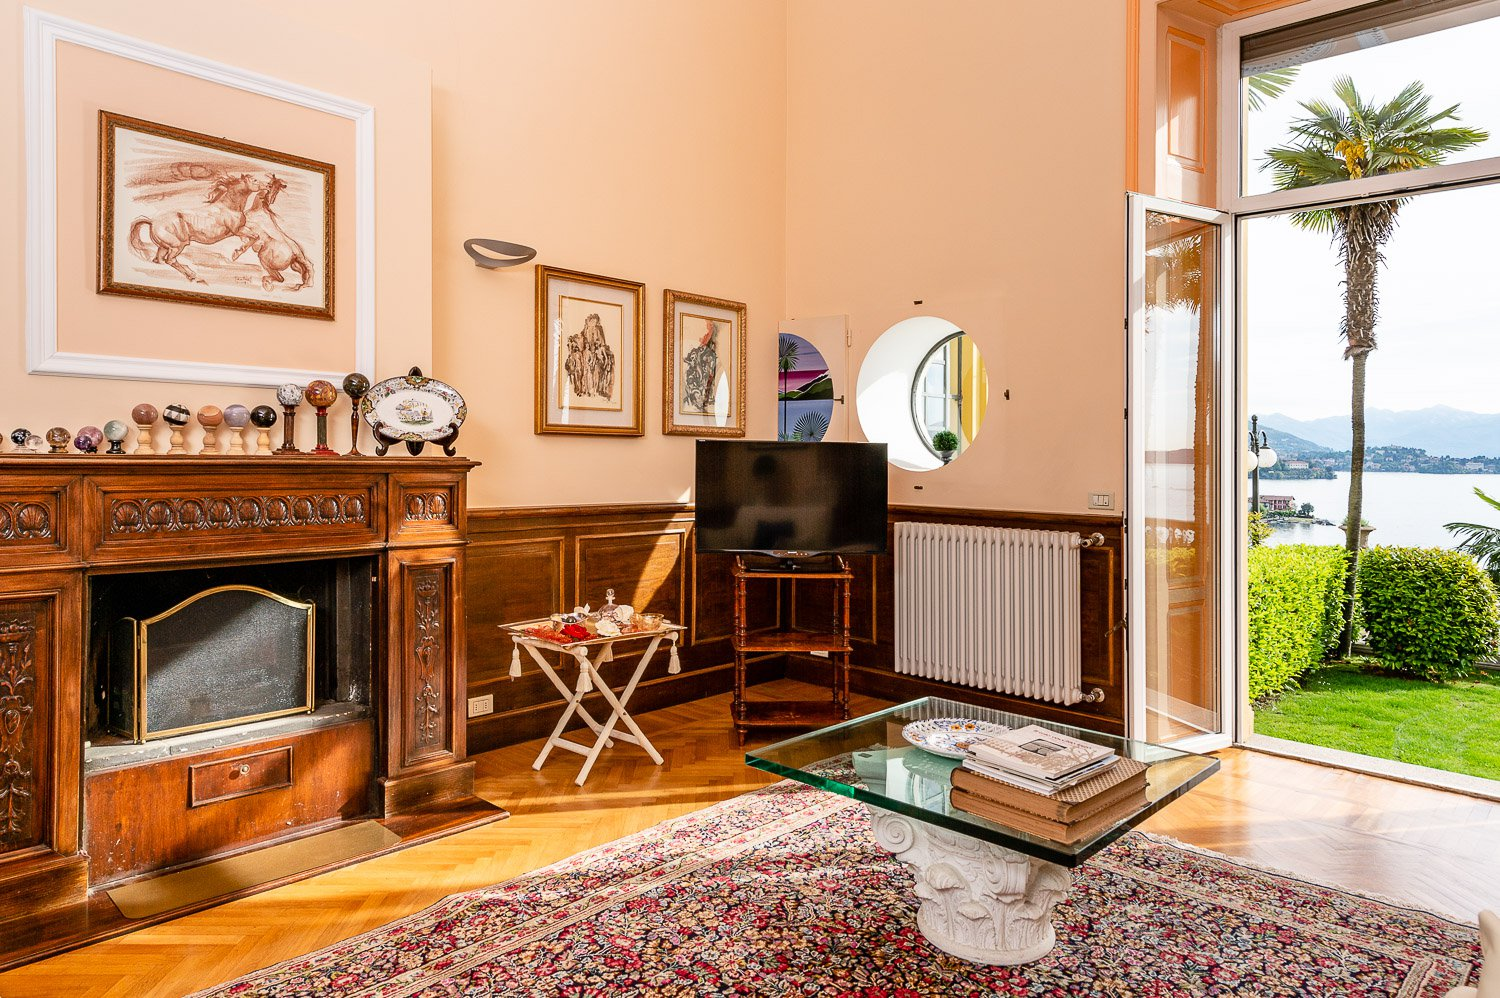 Apartment for sale in historic villa in Baveno- living room with fireplace